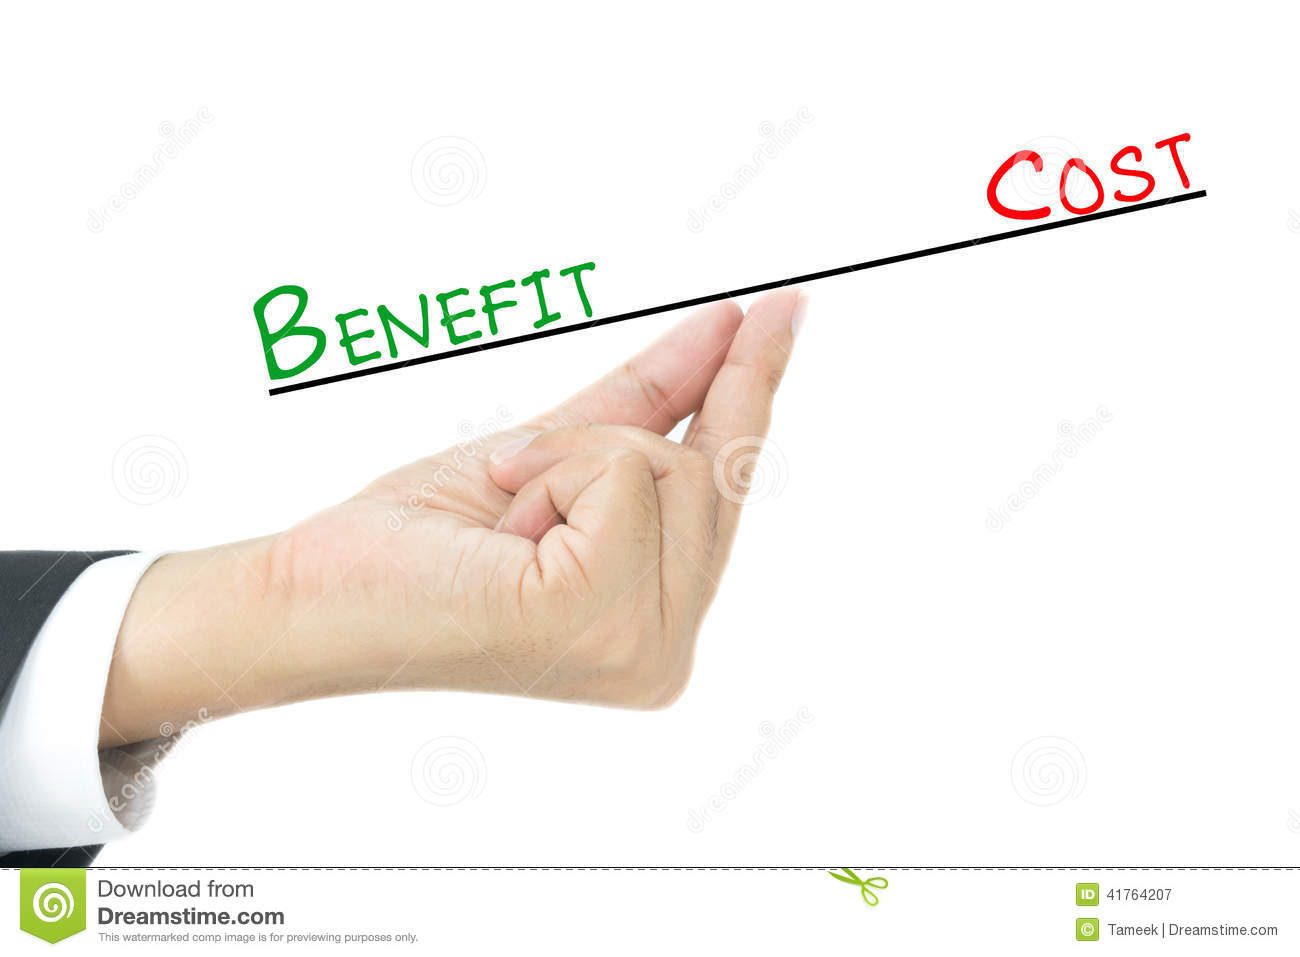 Benefit Vs Cost Comparison Stock Photo  Image: 41764207